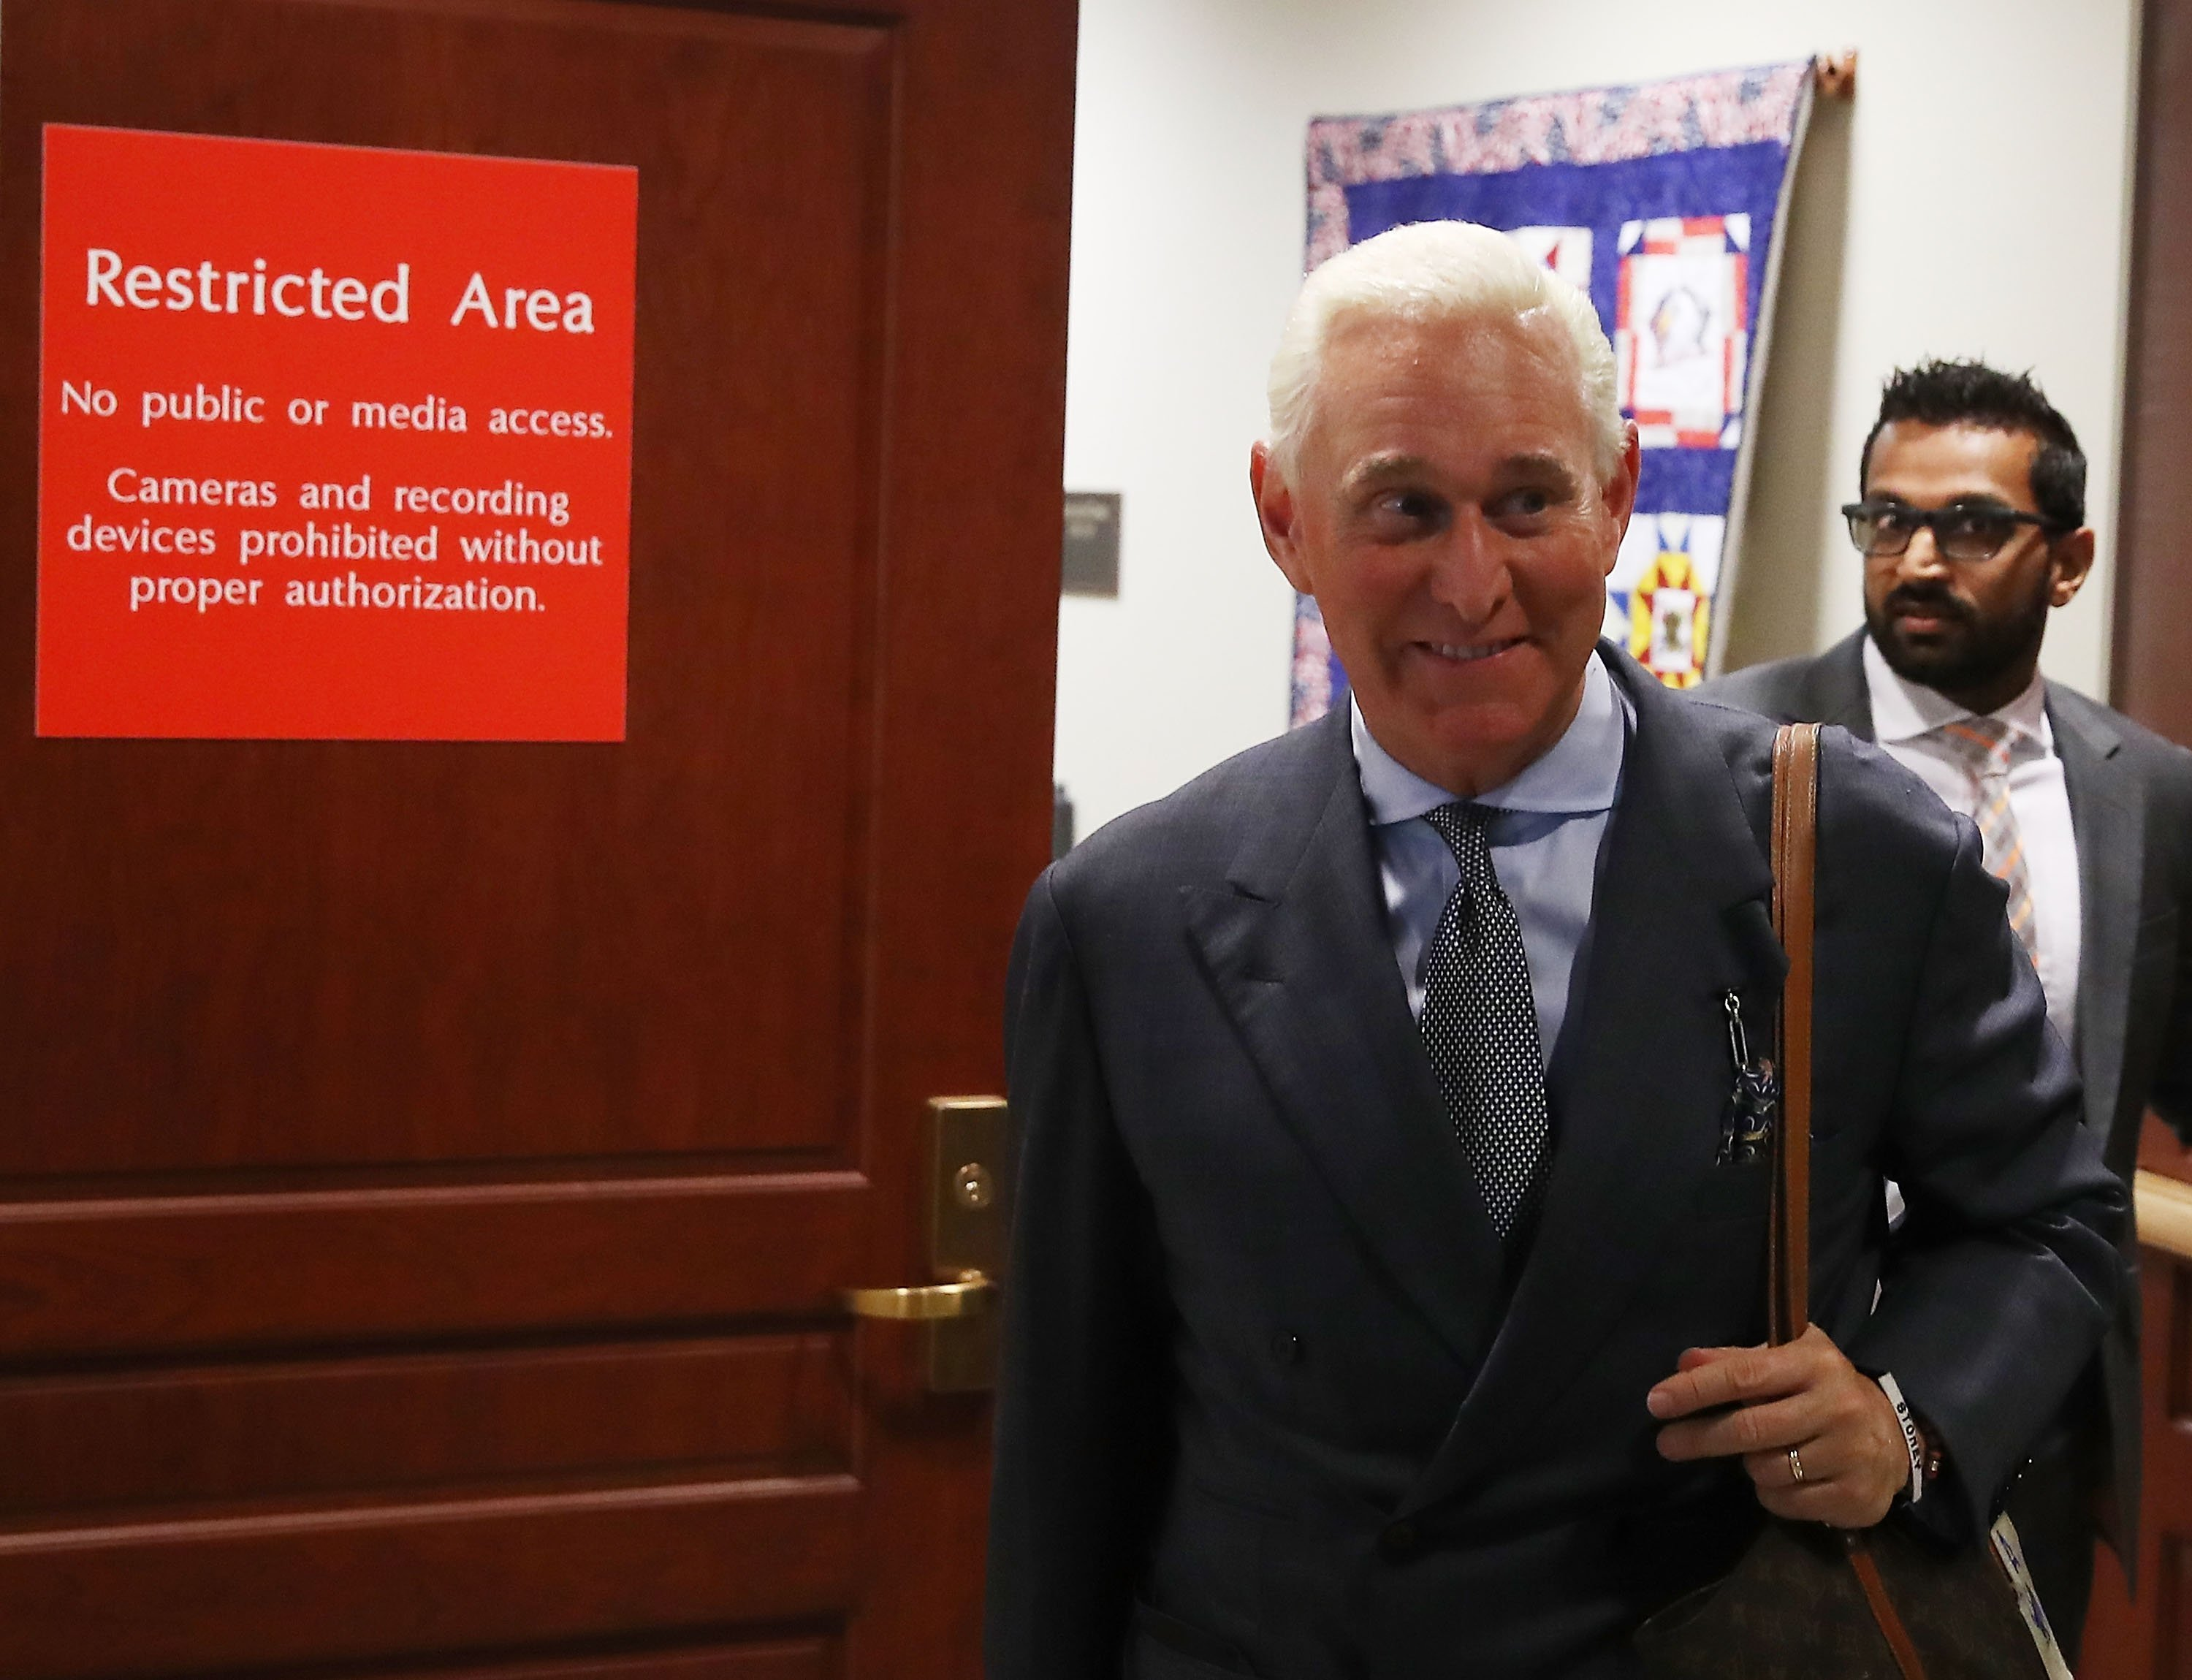 Andrew Miller, a former associate of longtime Donald Trump confidante Roger Stone, did not appear for a scheduled grand jury hearing on Friday, defying a subpoena from special counsel Robert Mueller, according to his attorney.